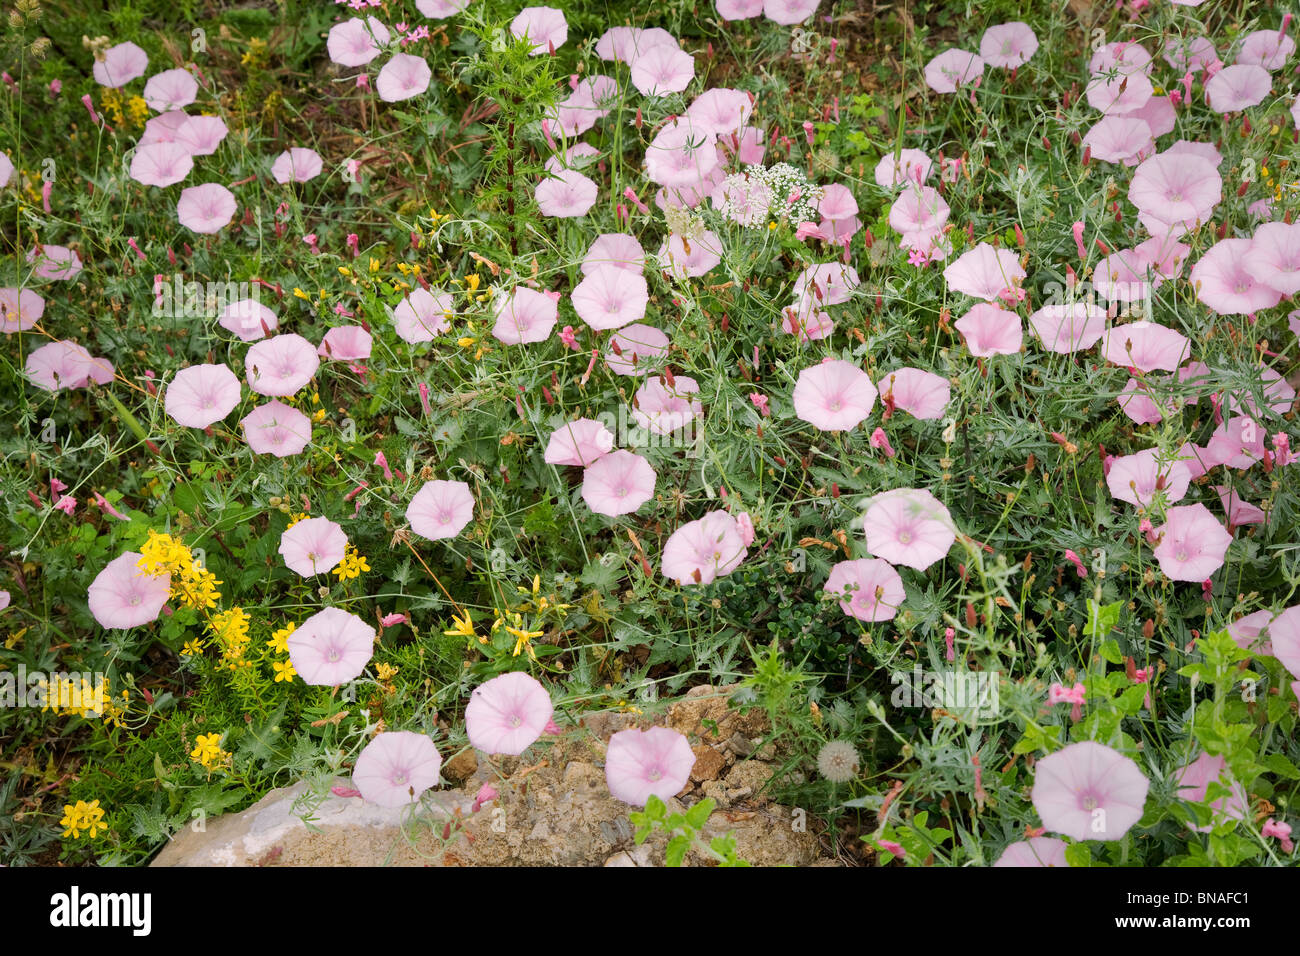 Bindweed Convolvulus althaeoides subspecies tenuissimus growing in profusion in a greek olive grove - Stock Image